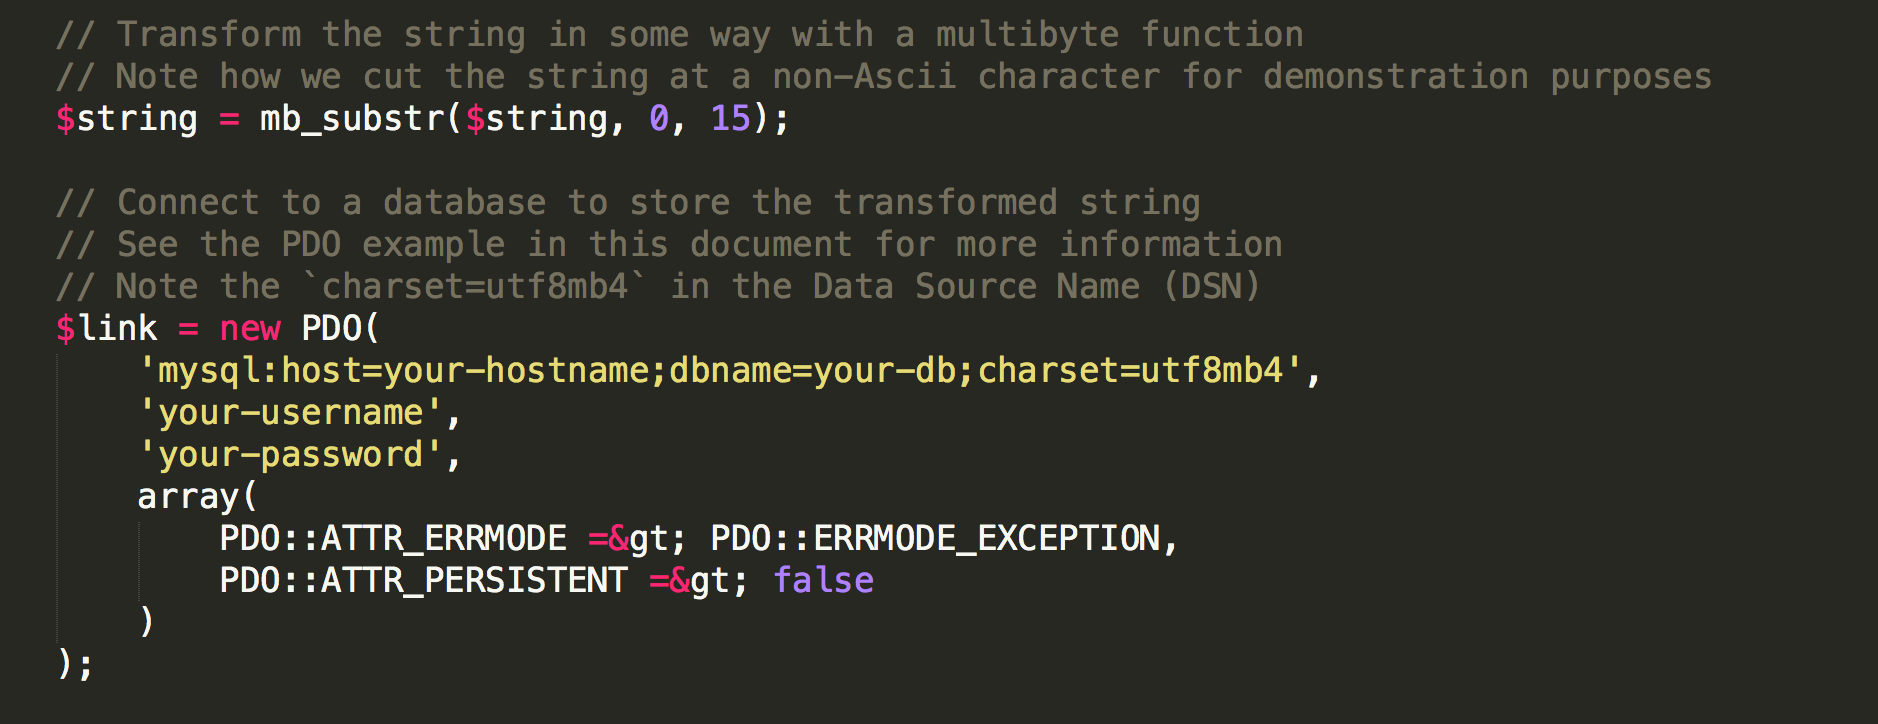 My weird code commenting style based on HTML tags